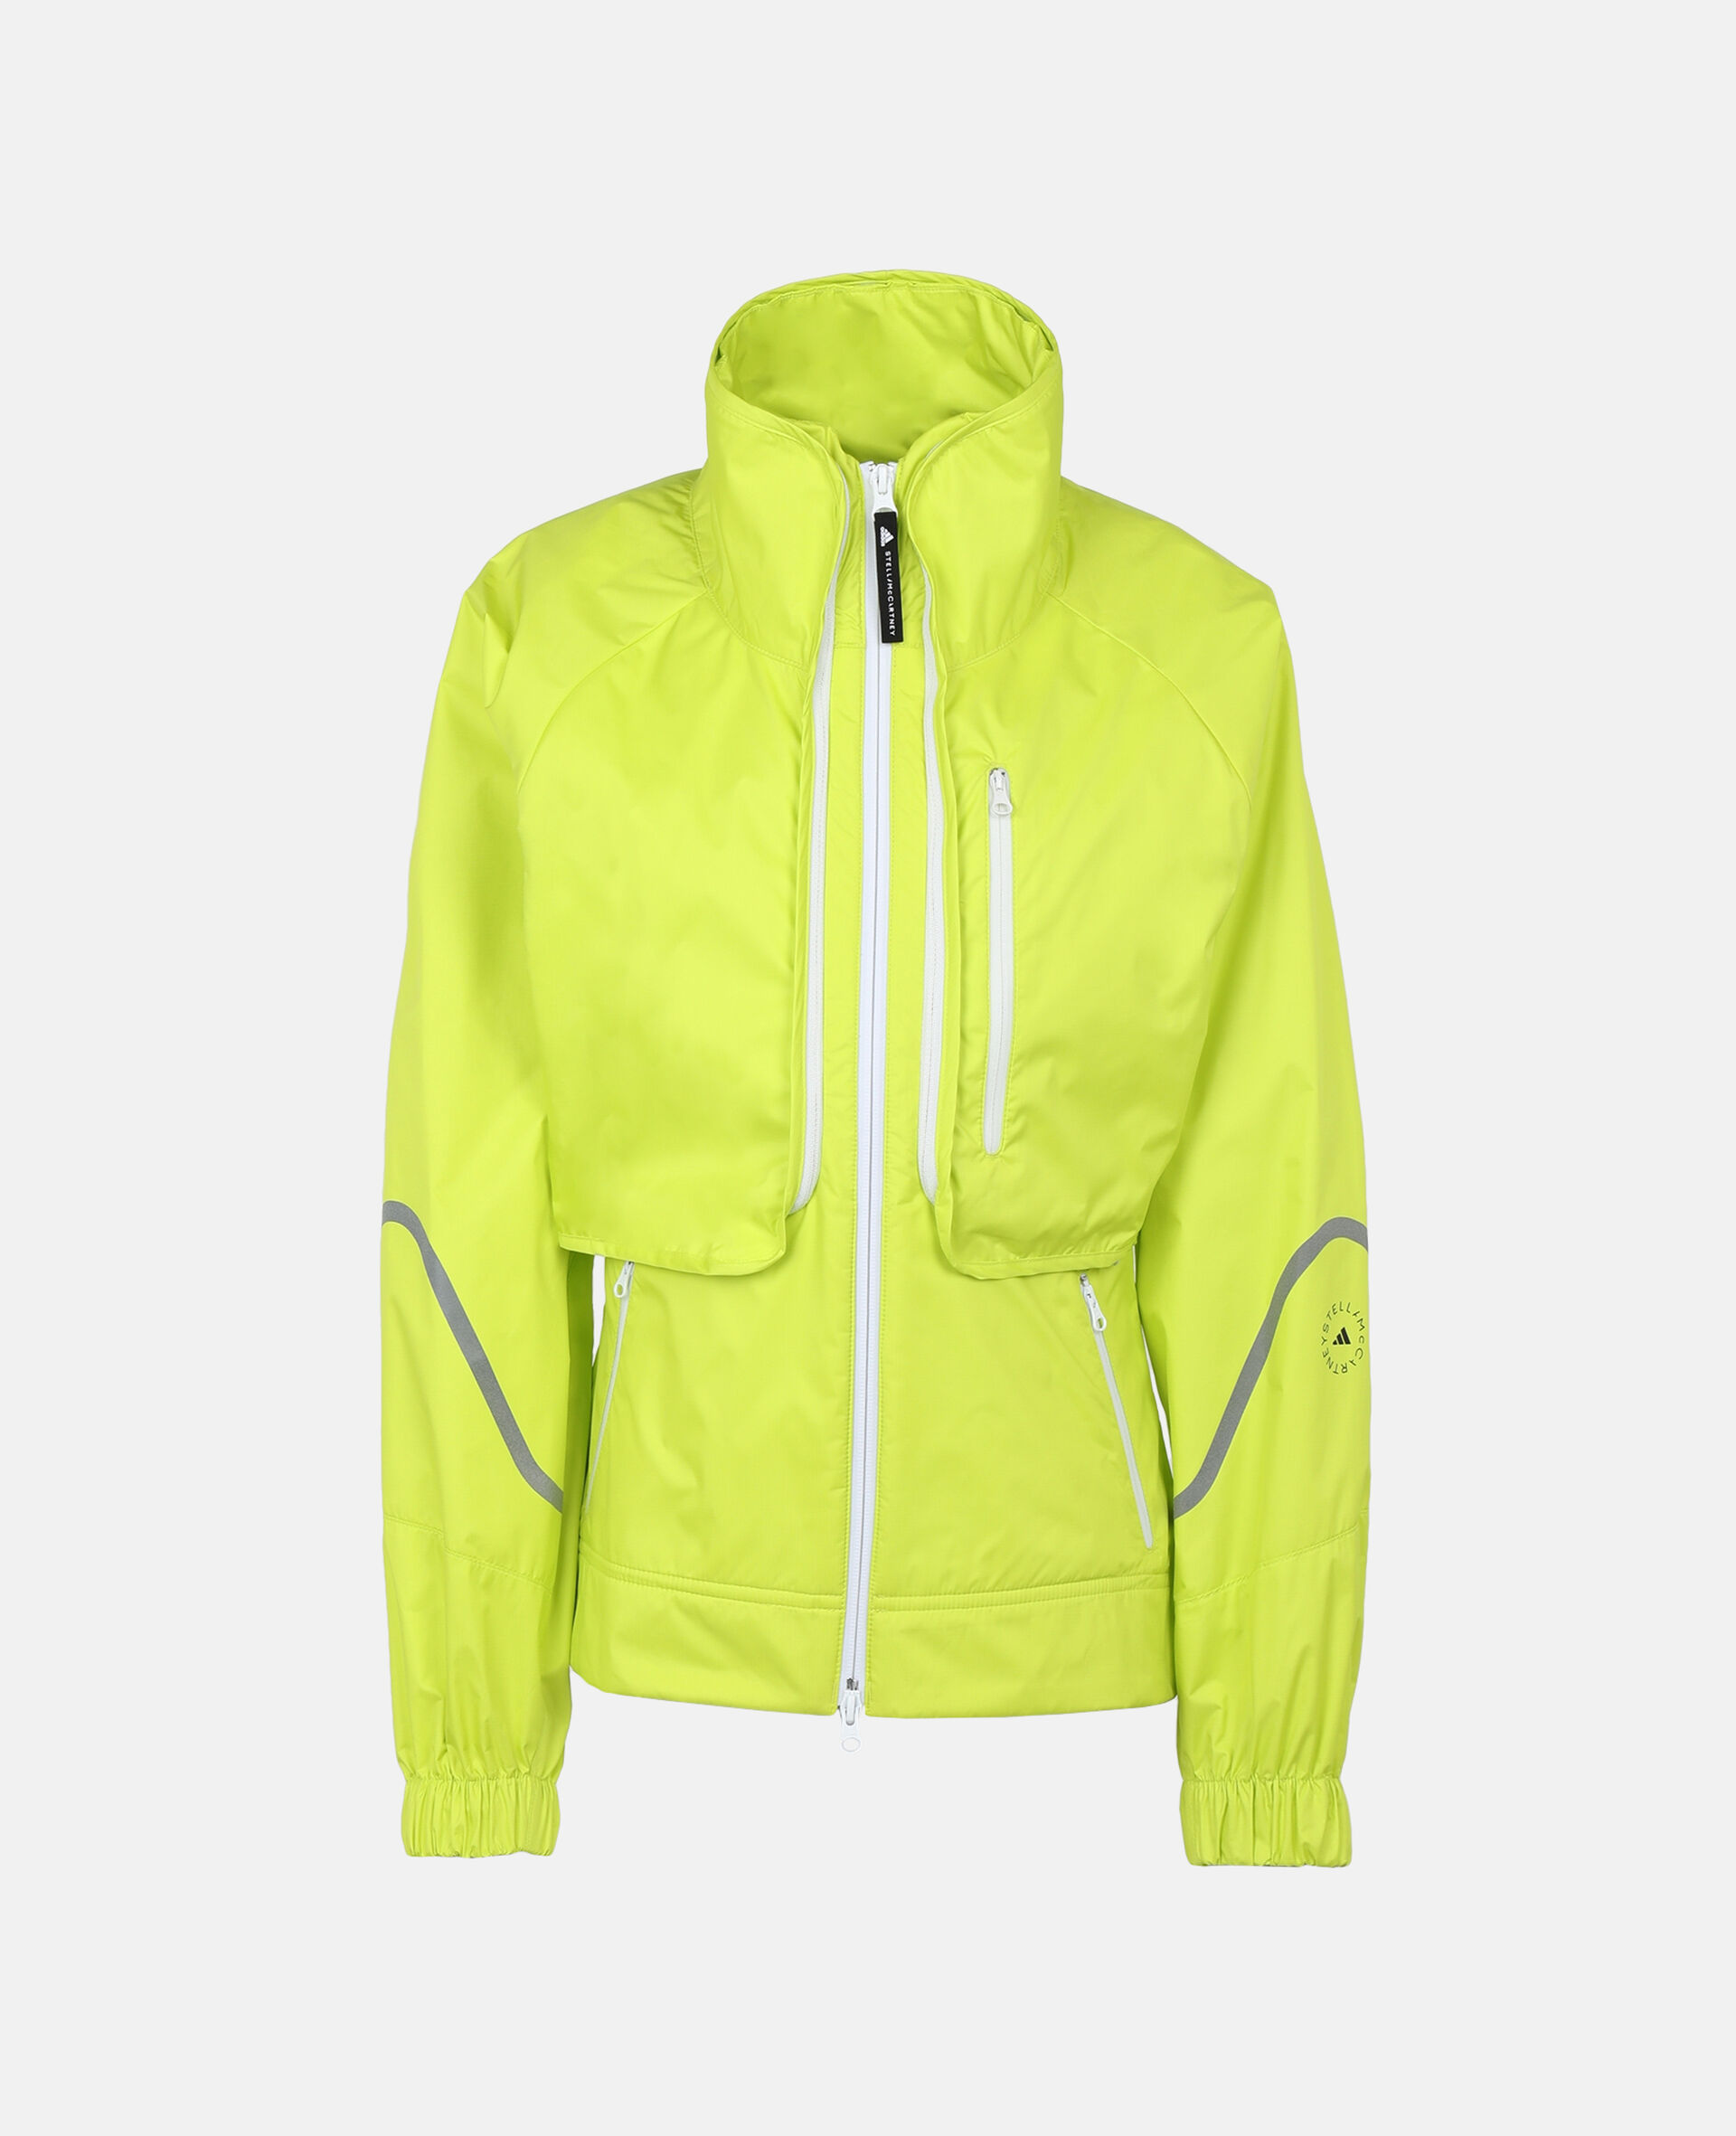 TruePace 2-in-1 Running Jacket-Yellow-large image number 0